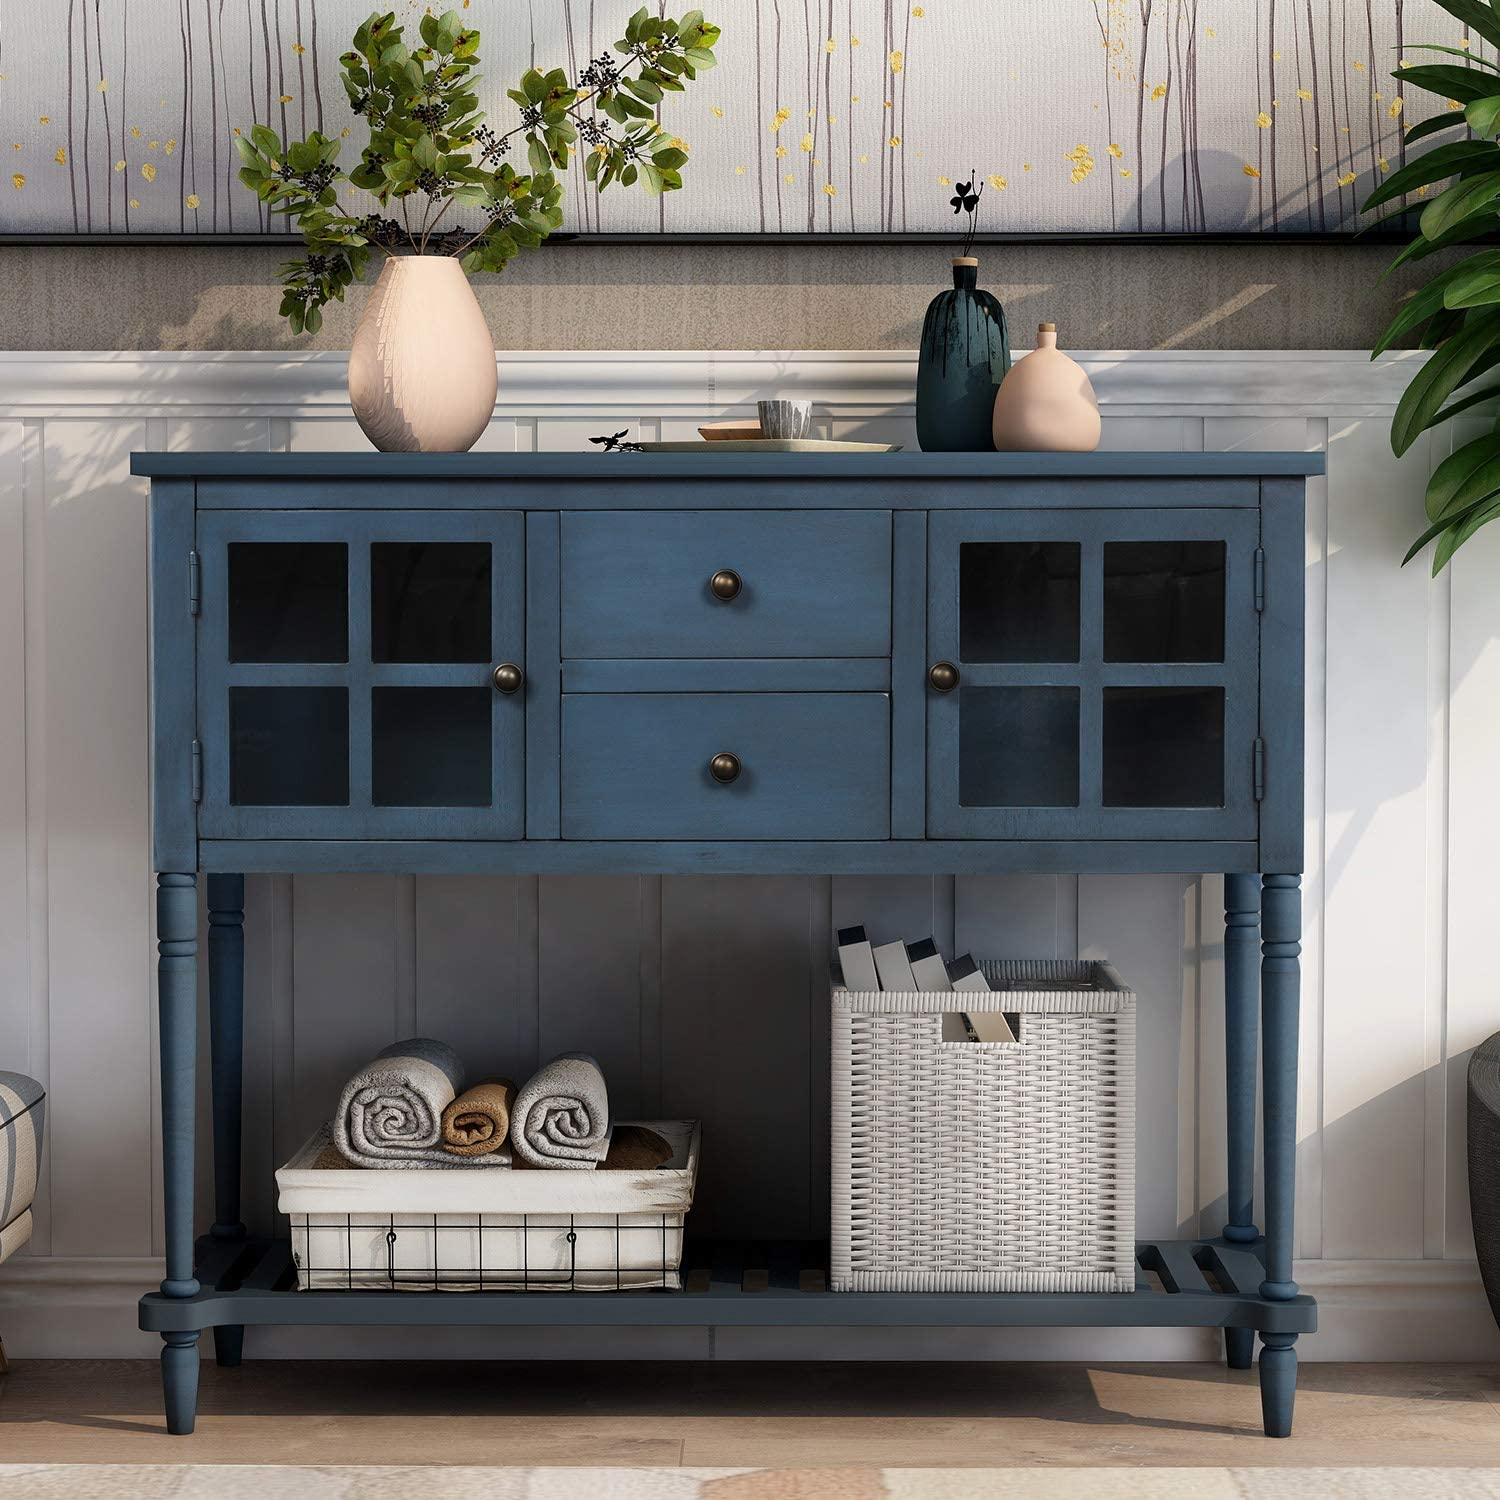 Knocbel 42 Inch Antique Console Table National products with Drawers Glass Doors Oakland Mall